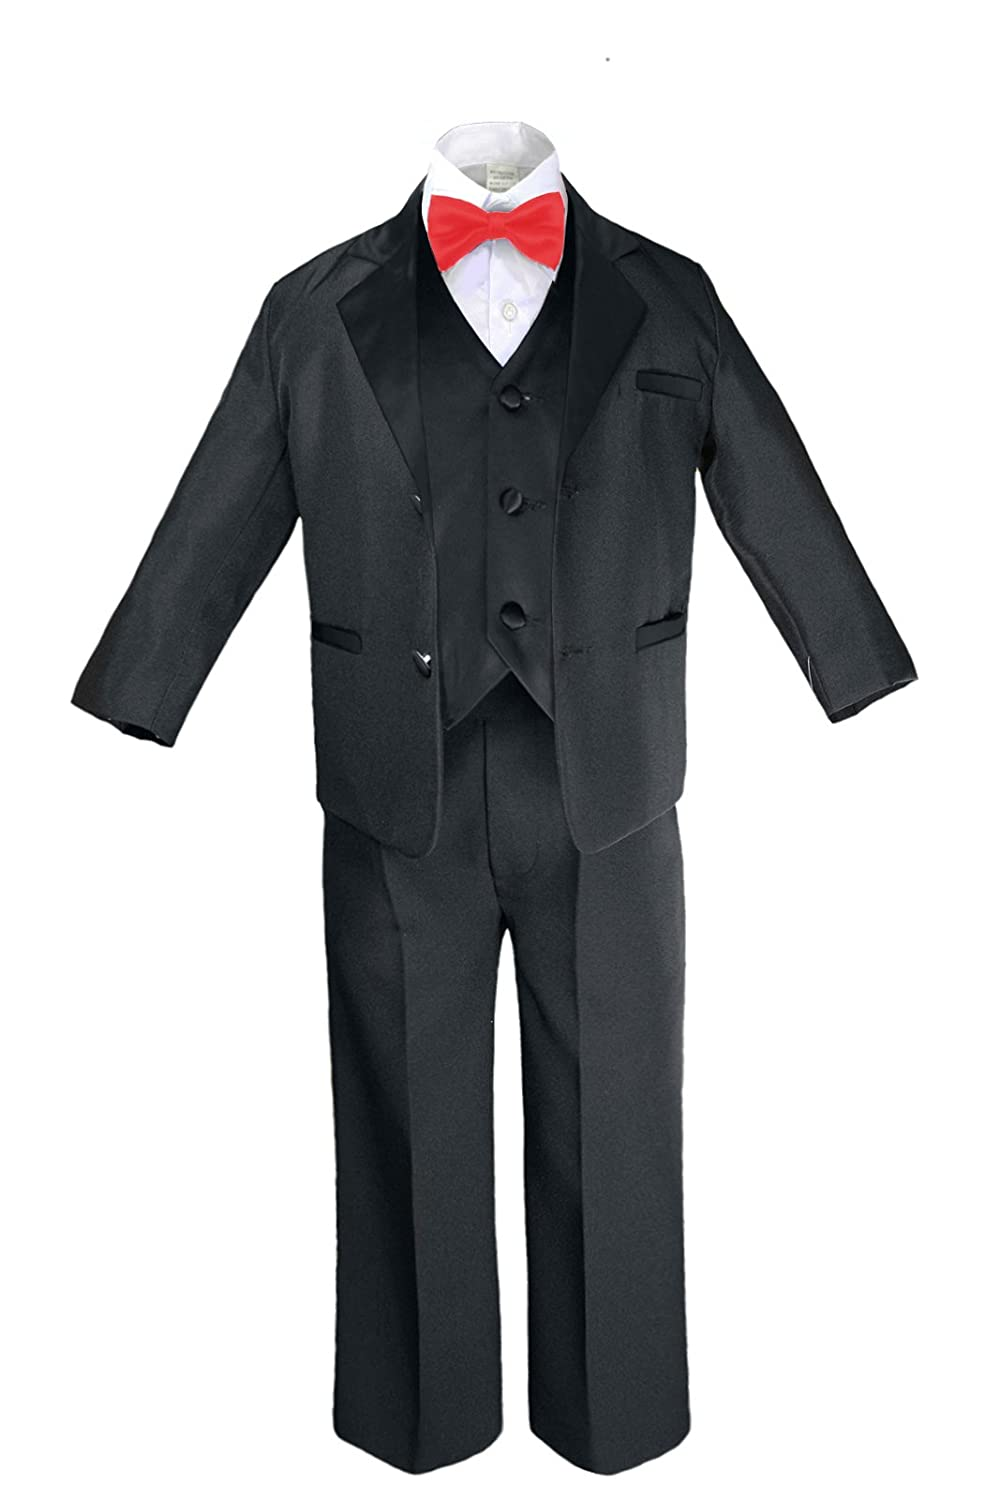 Medium: 6-12 months Formal Boy Black Suit Notch Lapel Satin Tuxedo Kid Baby Free Red Bow Tie